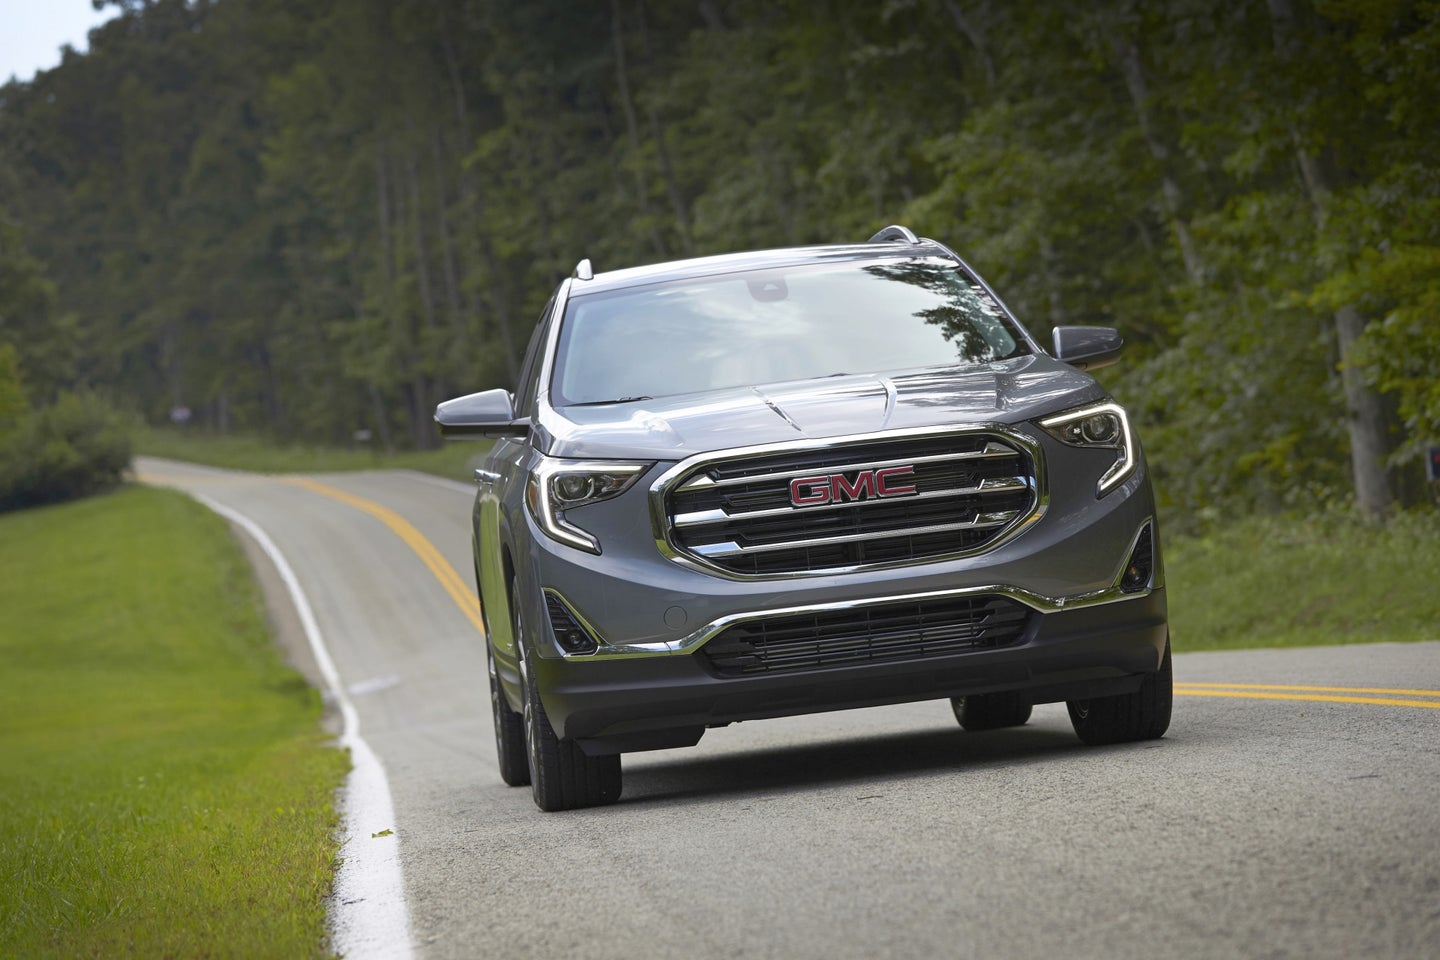 Over 88,000 2018 GMC Terrain SUVs Recalled Due to Possible Airbag Deployment Issue